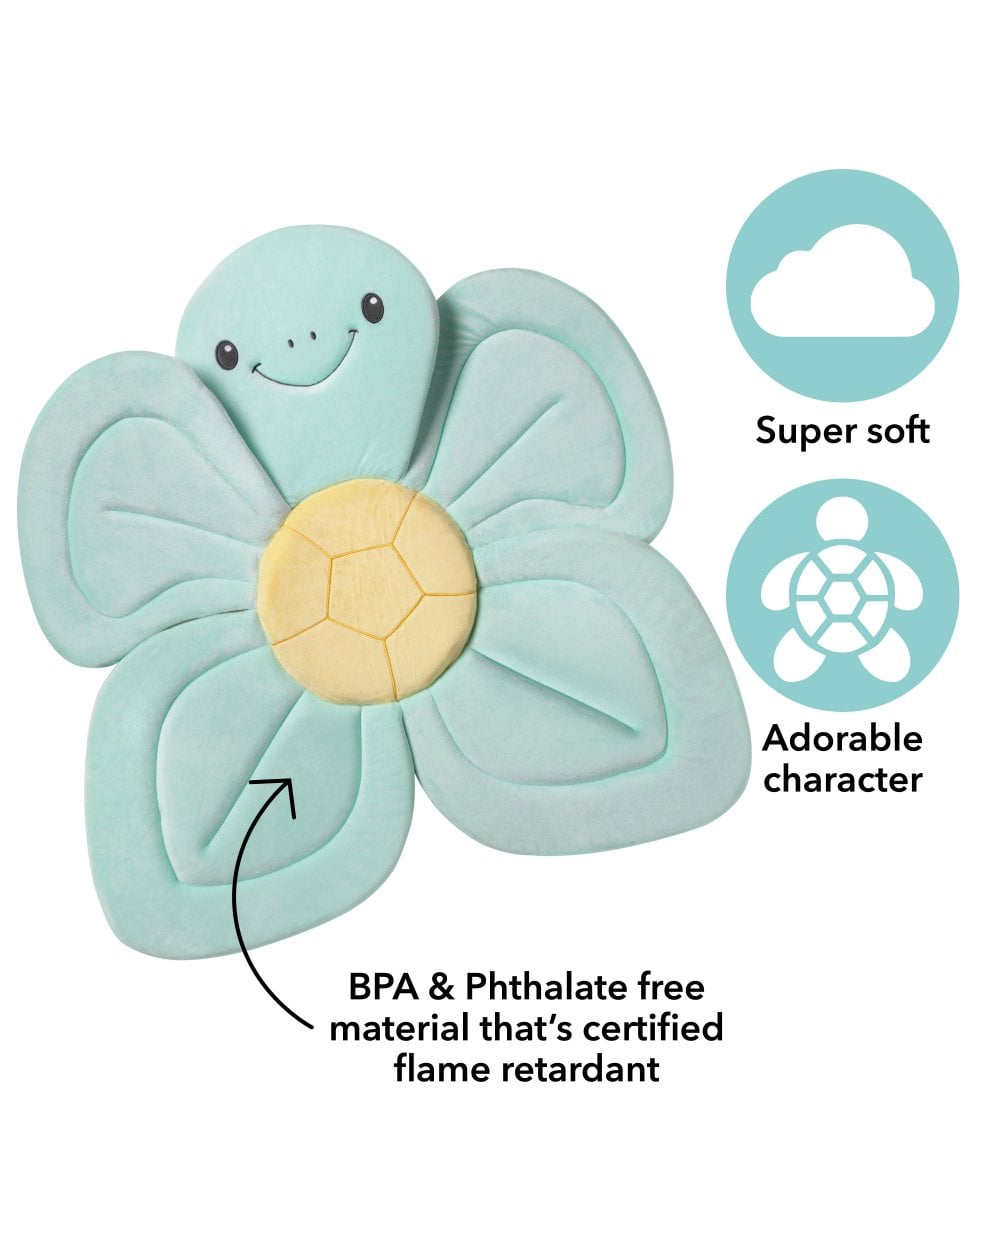 Dr Teal's Baby : teal's, Turtle, Floater, Bathing, Insert, Cushion